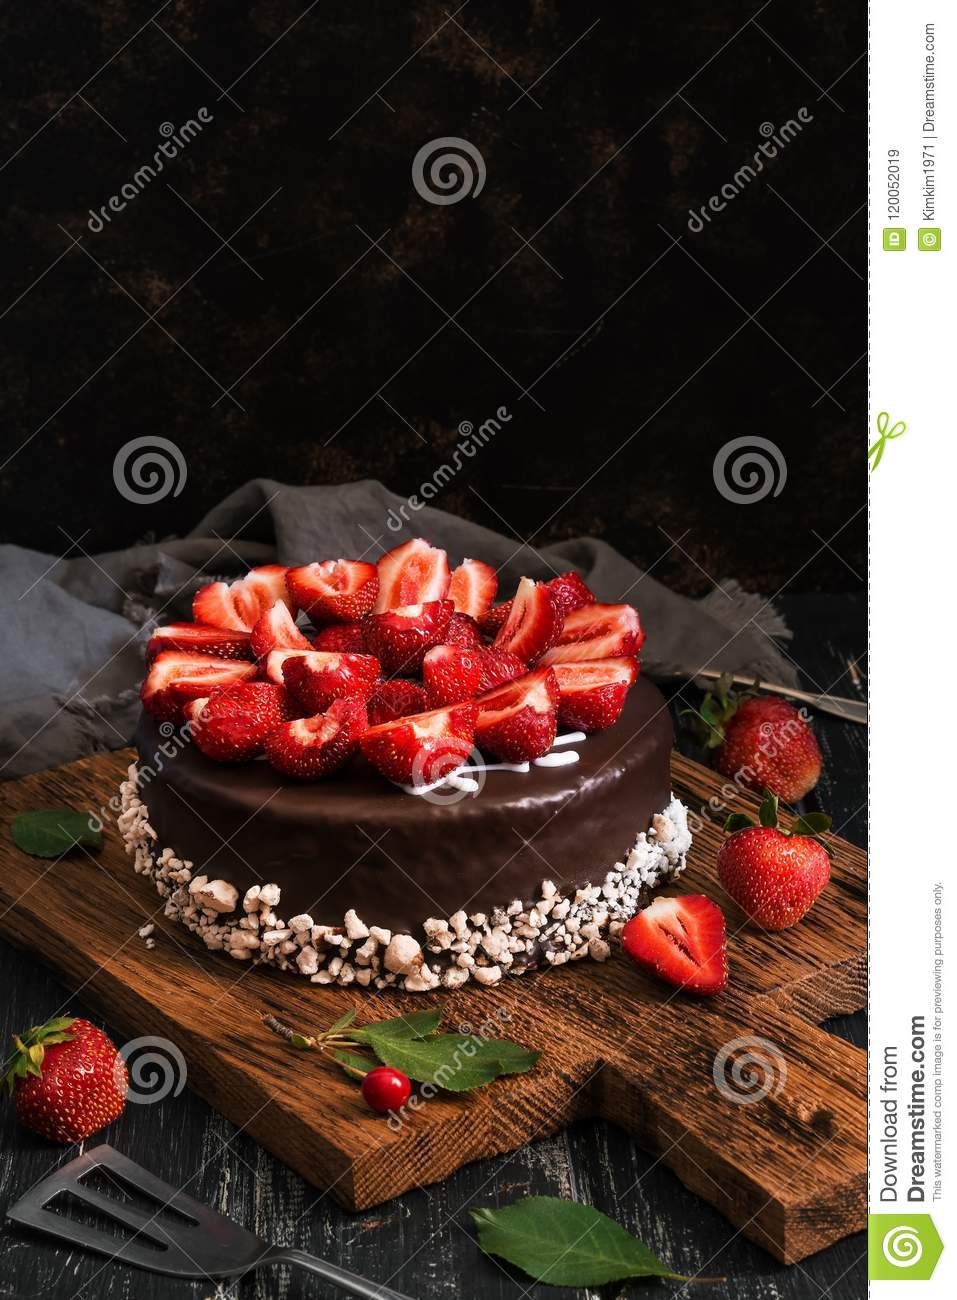 Chocolate Cake With Strawberries Dark Food Photography Rustic Style Selective Focus